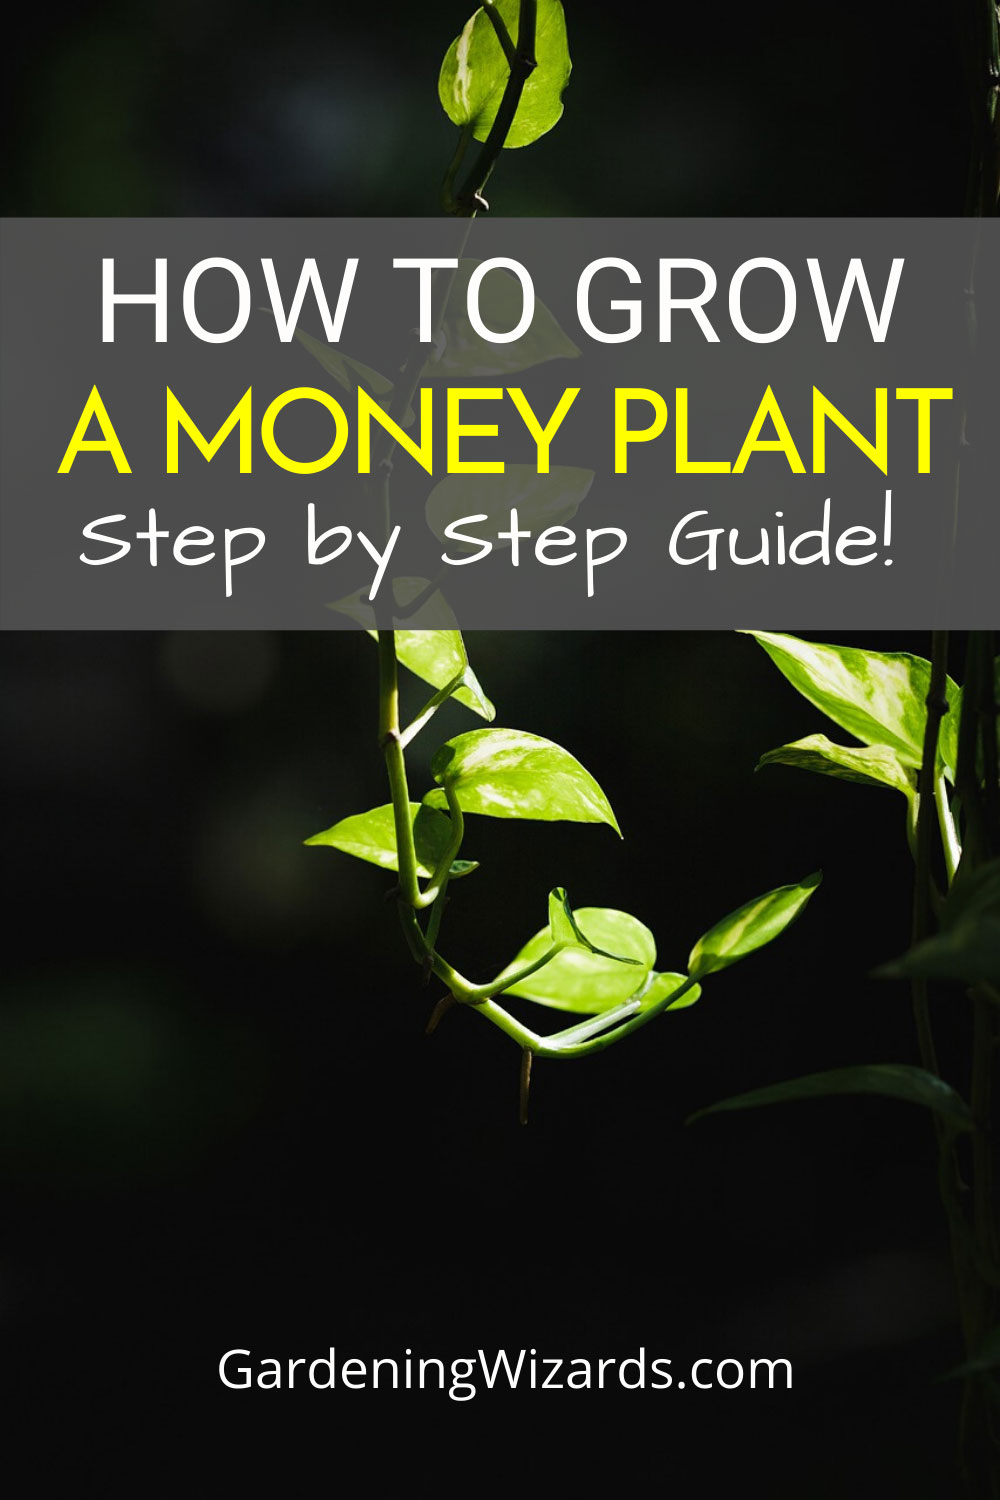 How to grow a money plant